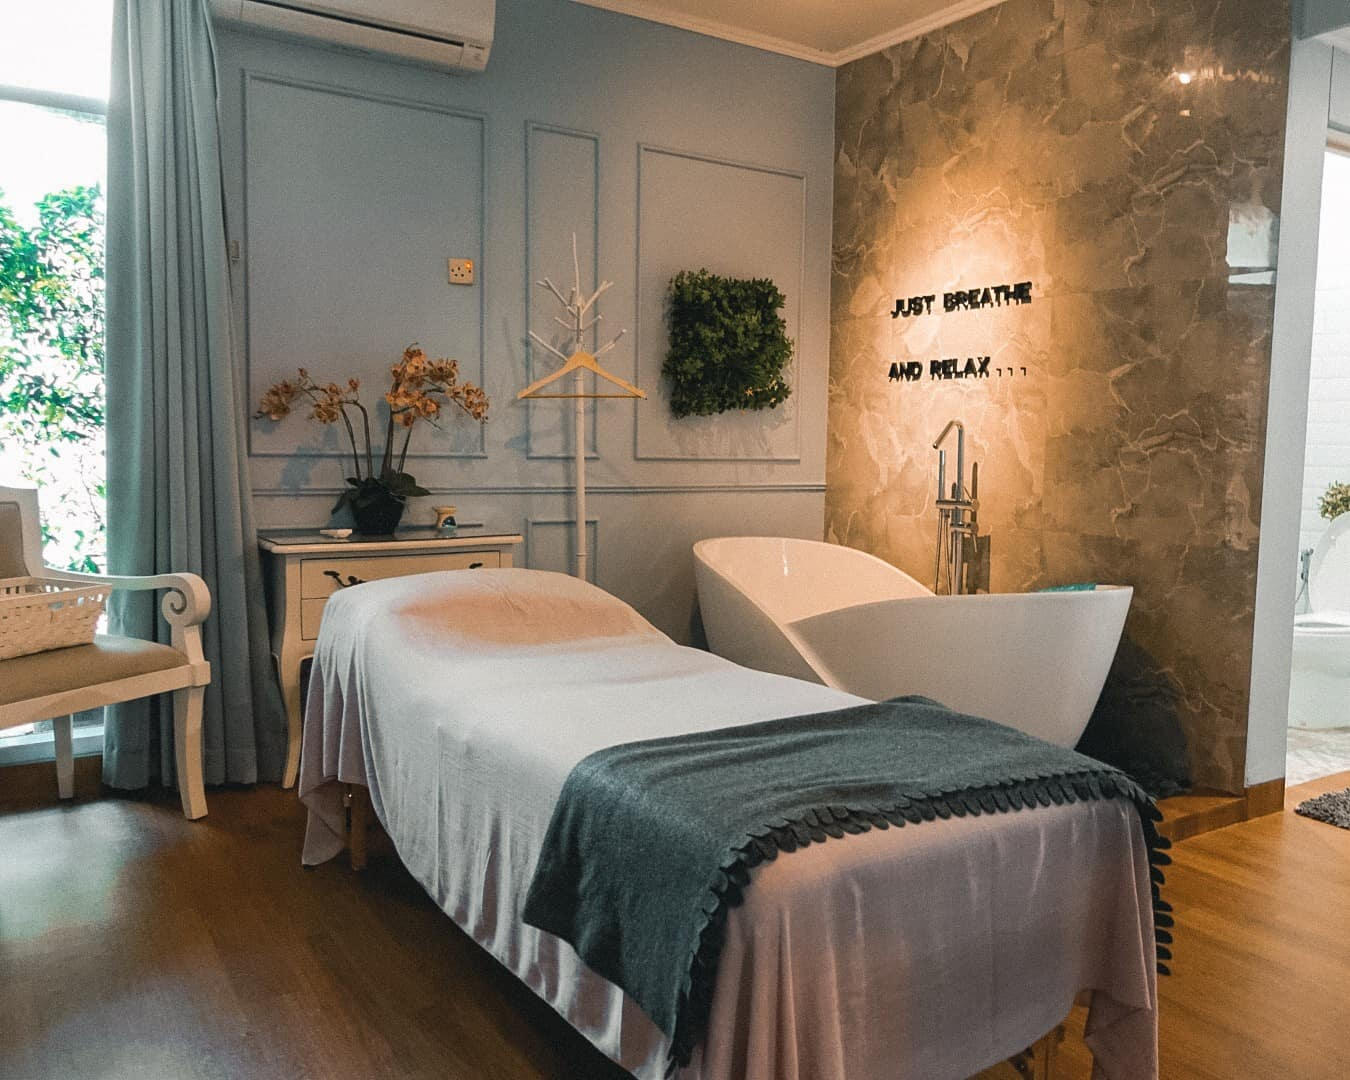 pavilion beauty salon jakarta cempaka putih travelbeib review 2018 spa massage room